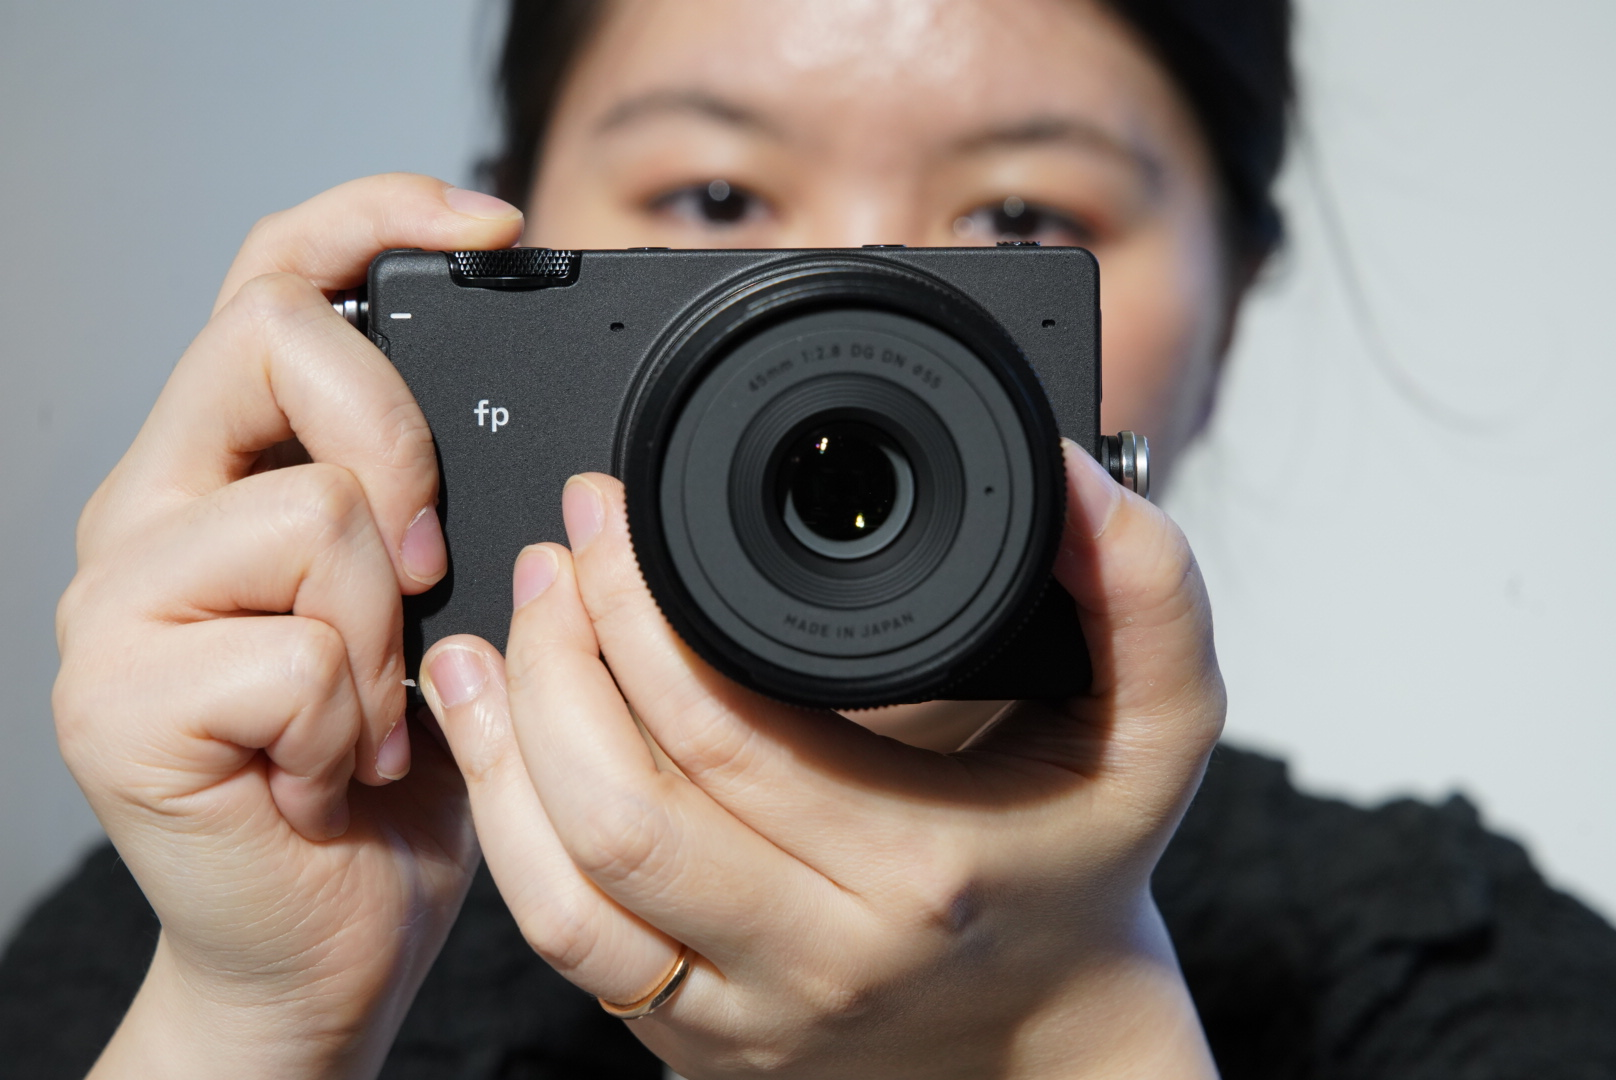 Hands-on with new Sigma 'fp' - a compact, full-frame, L